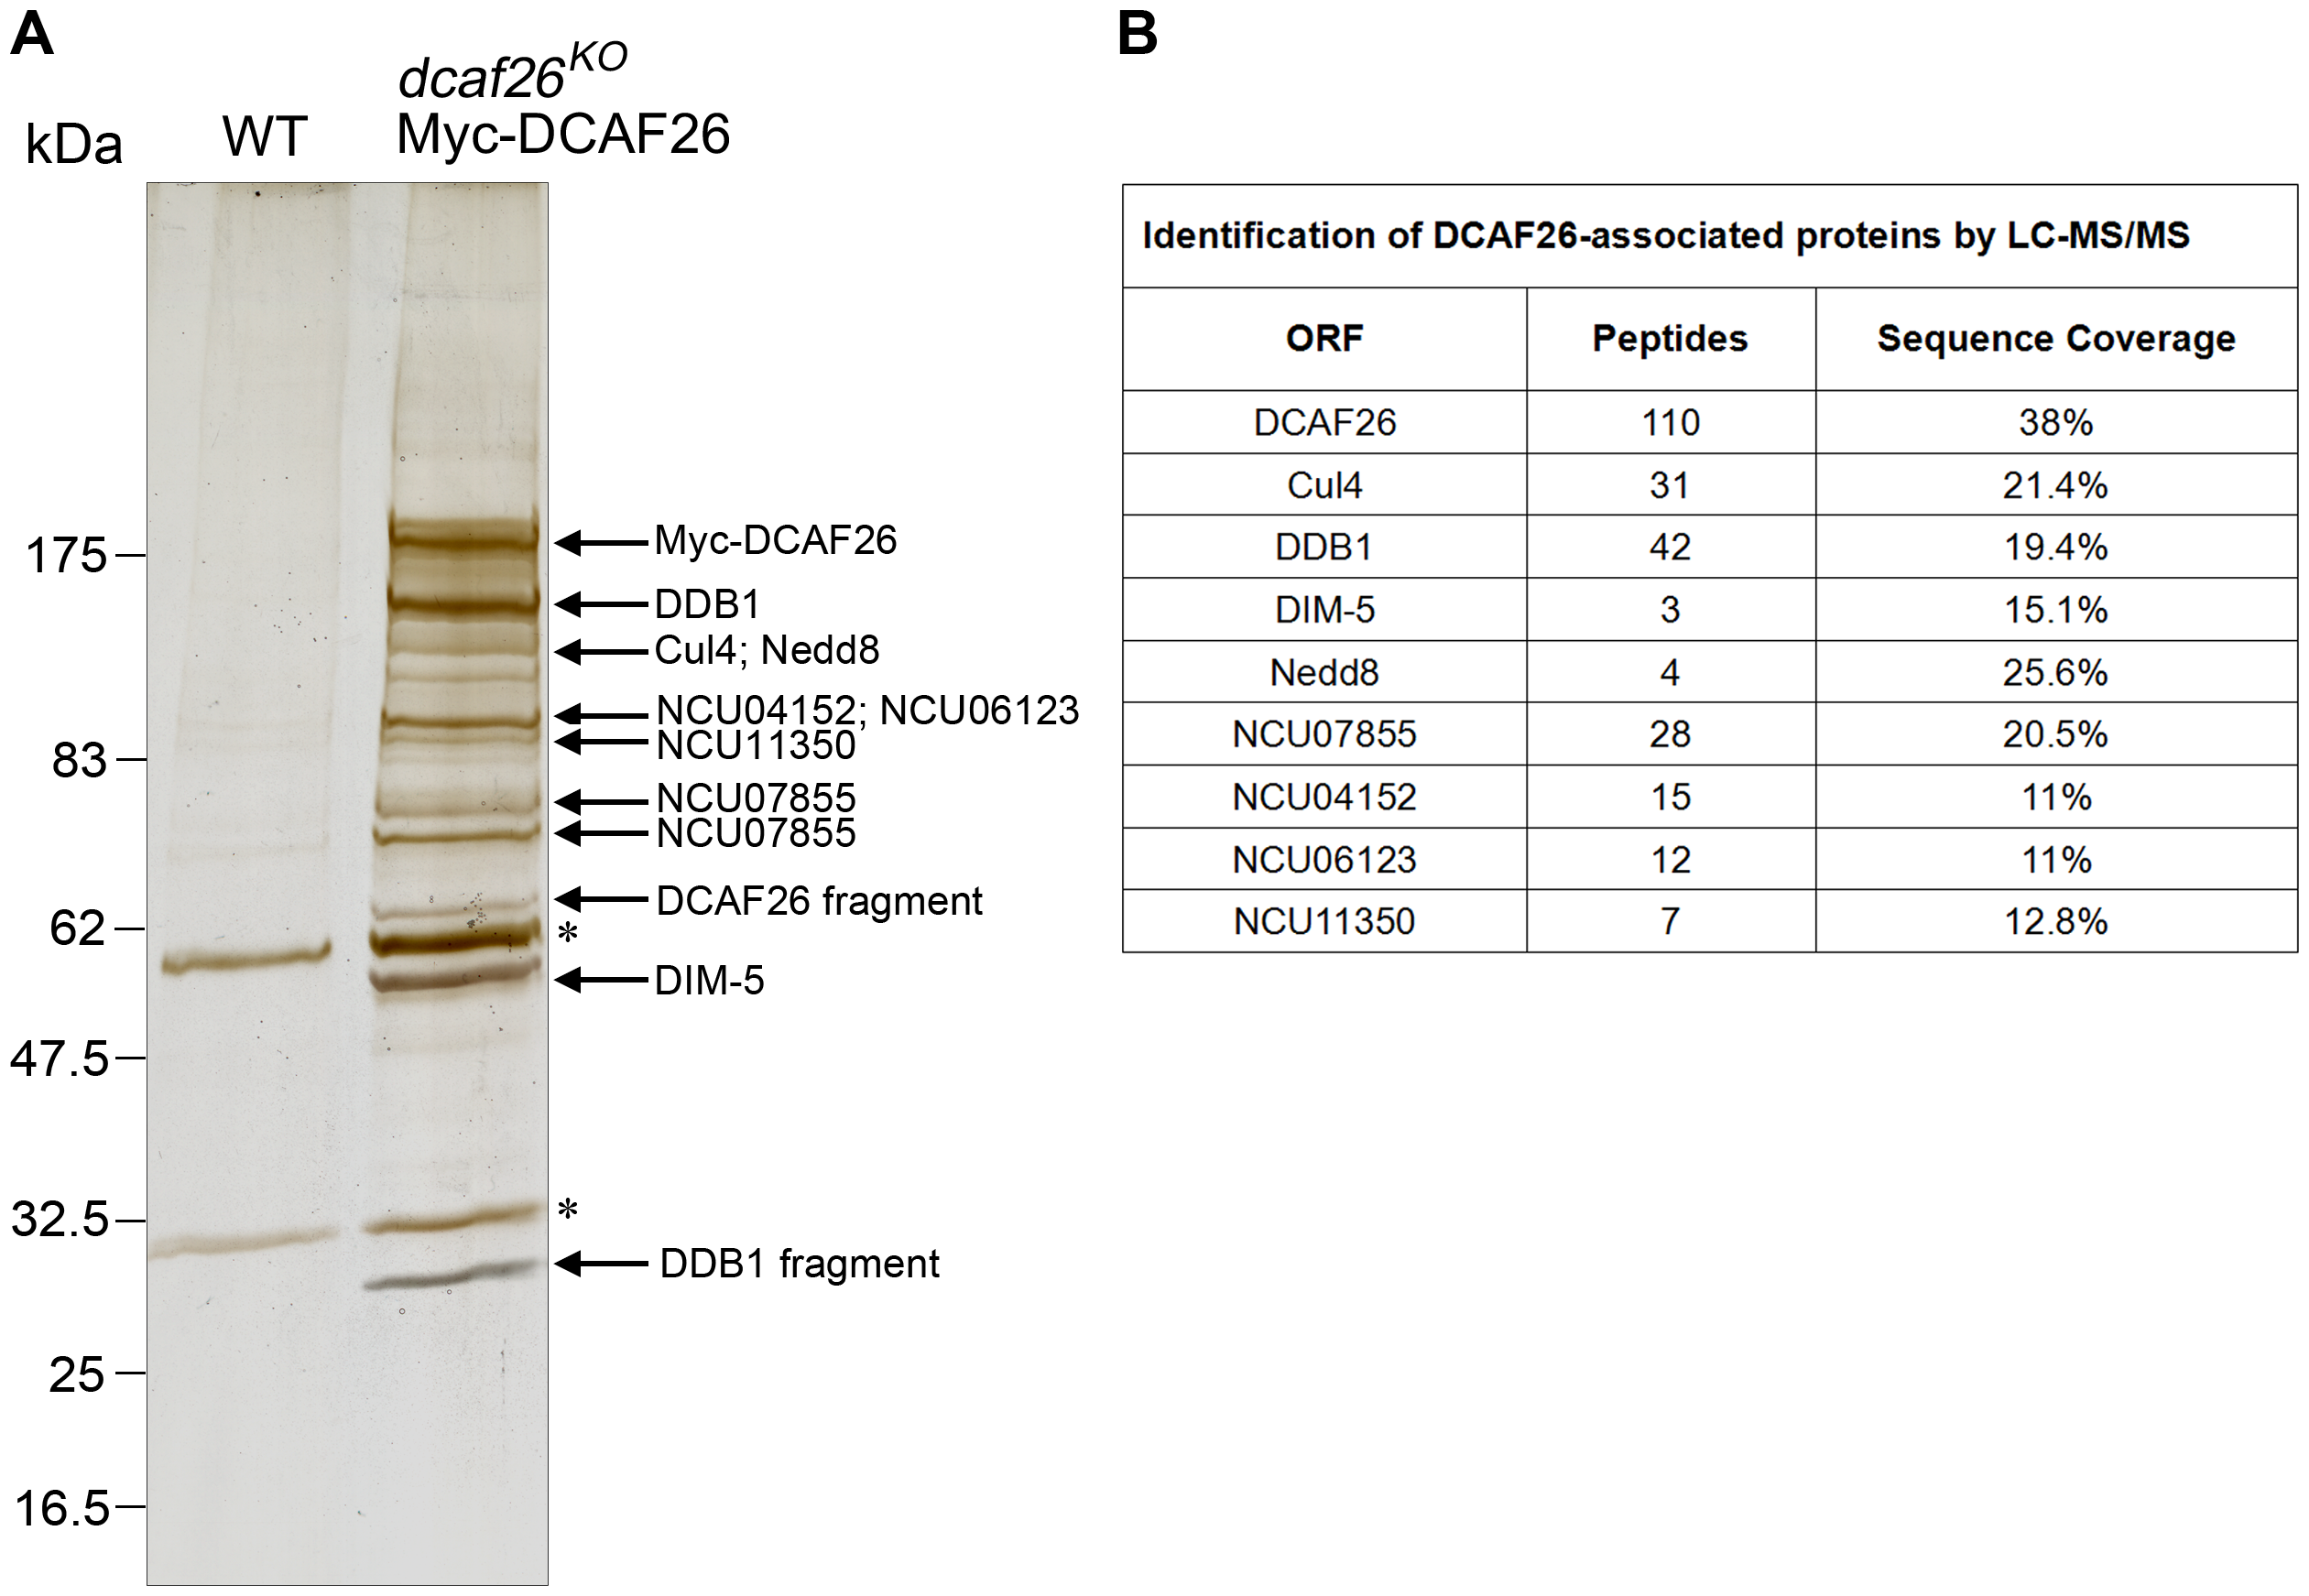 Identification of DCAF26-associated proteins.